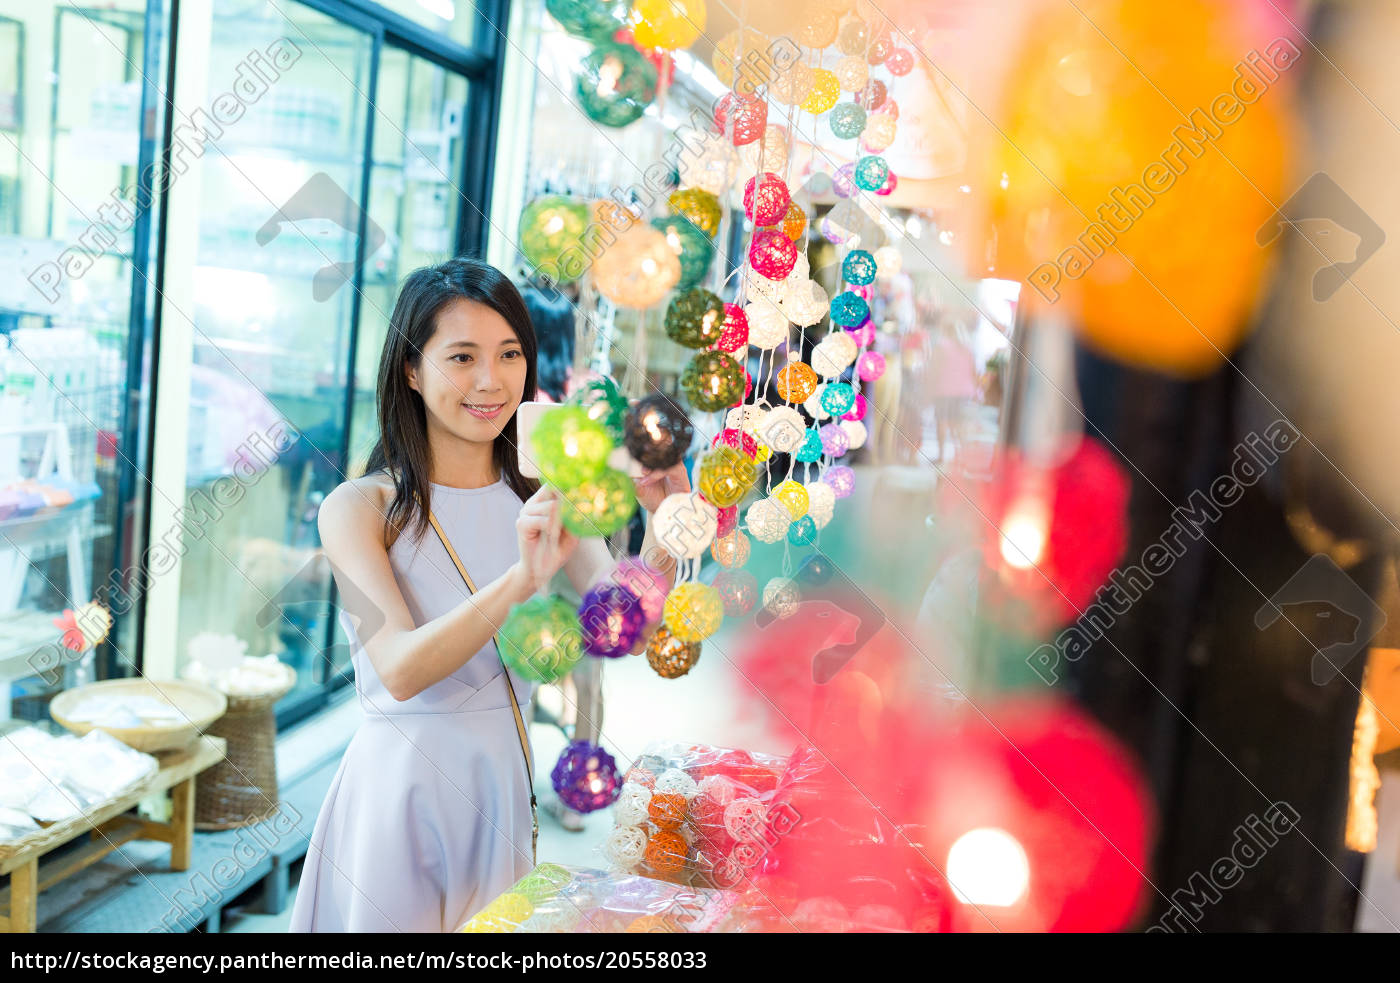 young, woman, shopping, at, weekend, market - 20558033